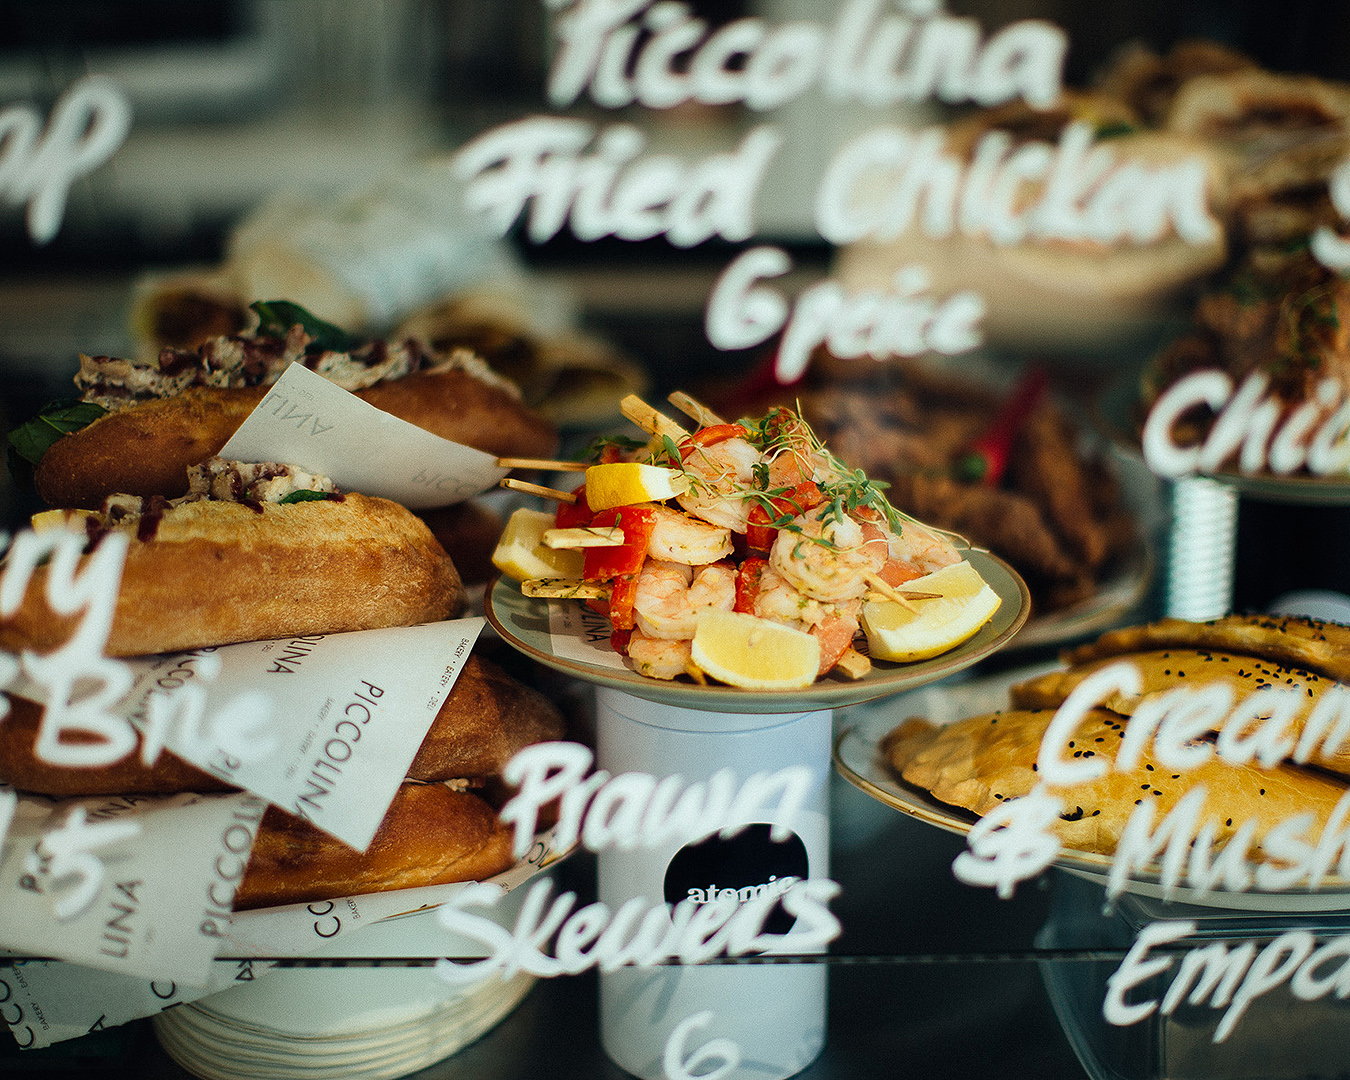 Some of the delicious cabinet food on offer at Piccolina.